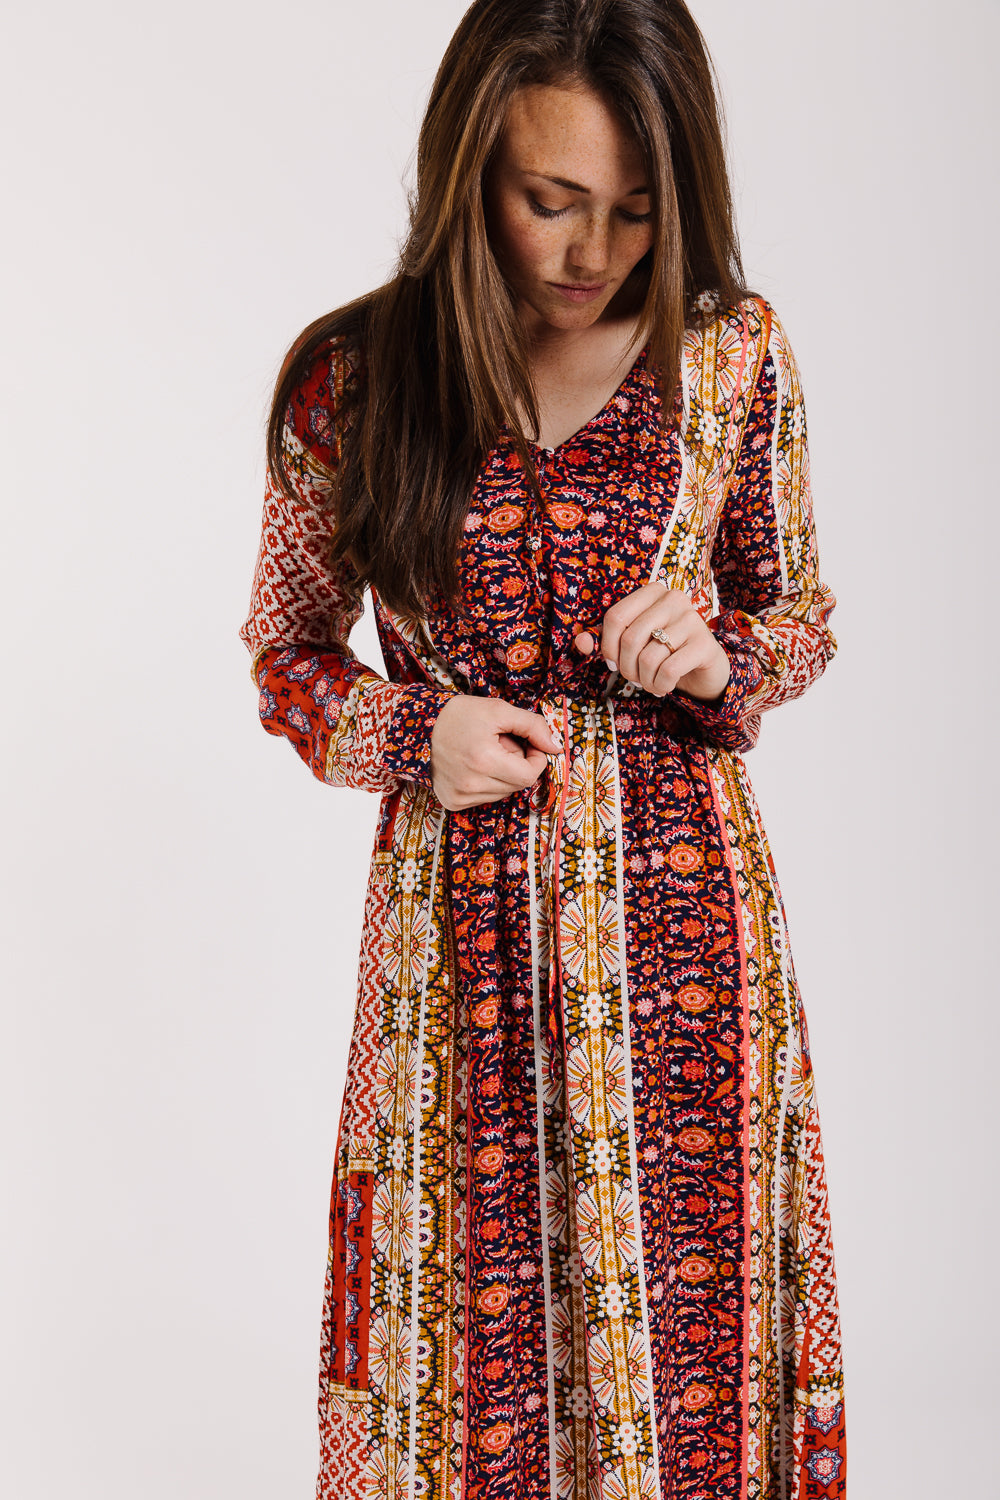 The Fields Patterned Maxi Dress